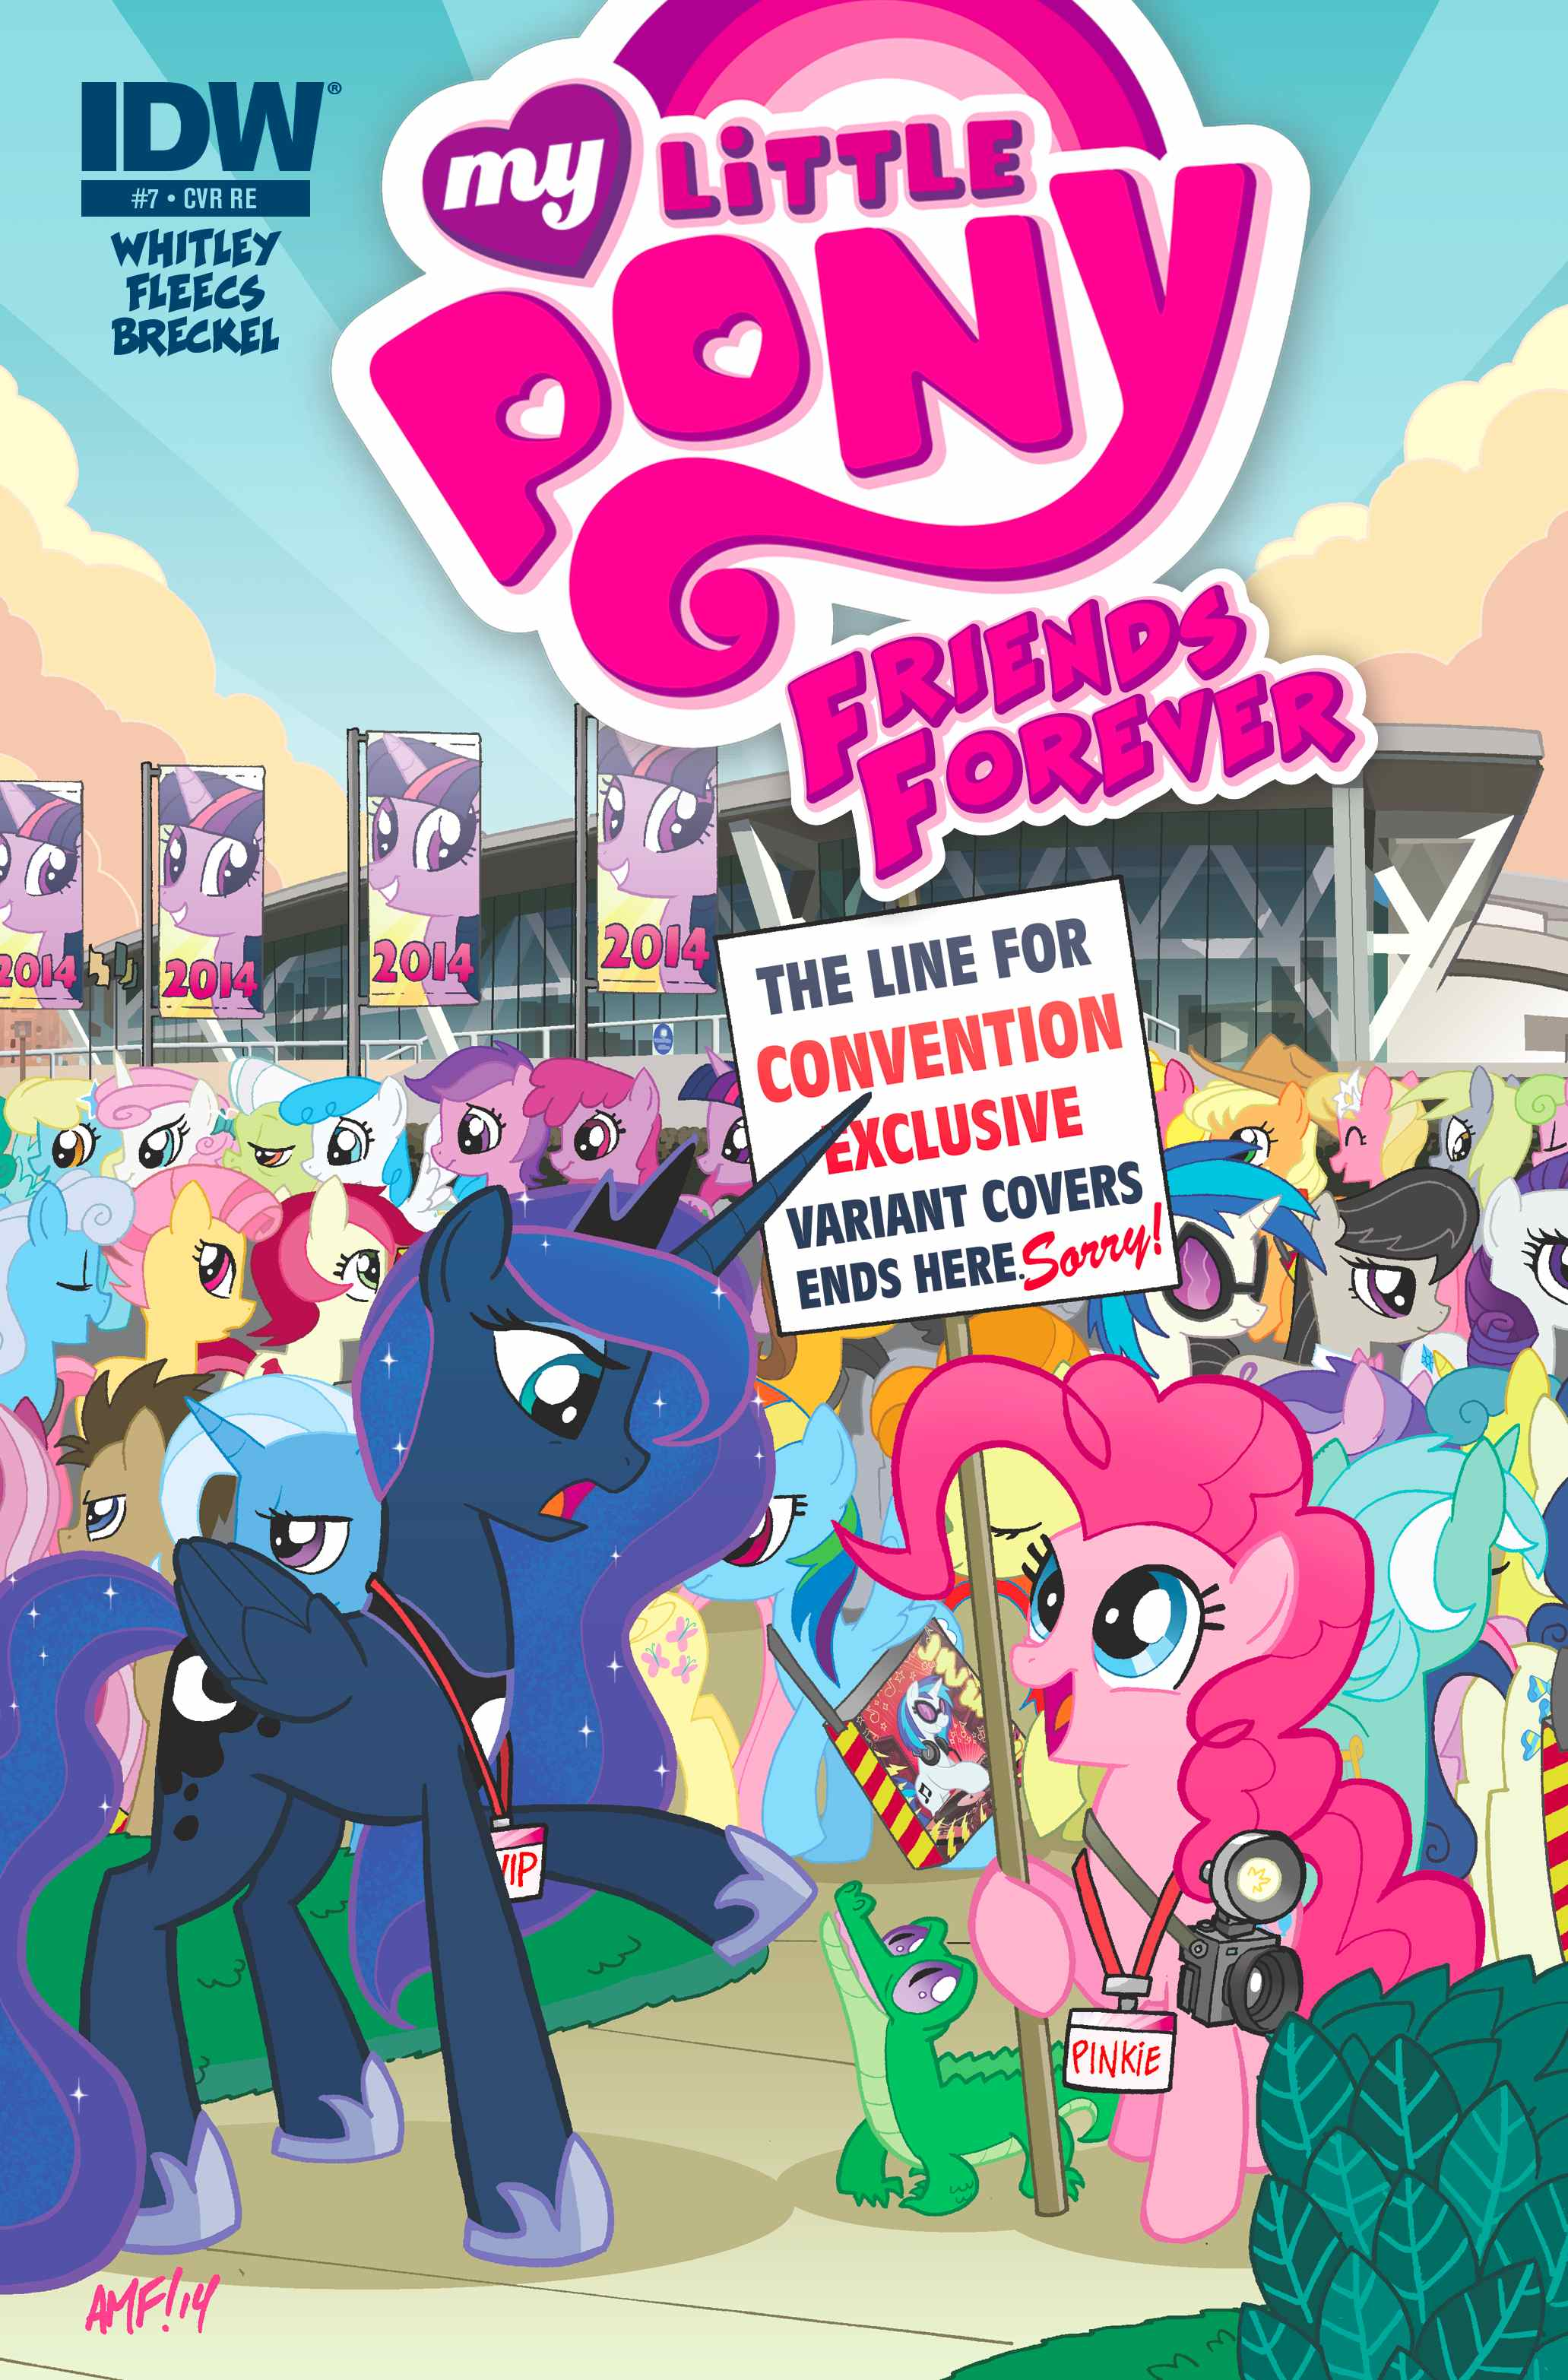 My Little Pony Friends Forever #7 (OFFICIAL BRONY CON EDITION – Limited Edition Color Cover)